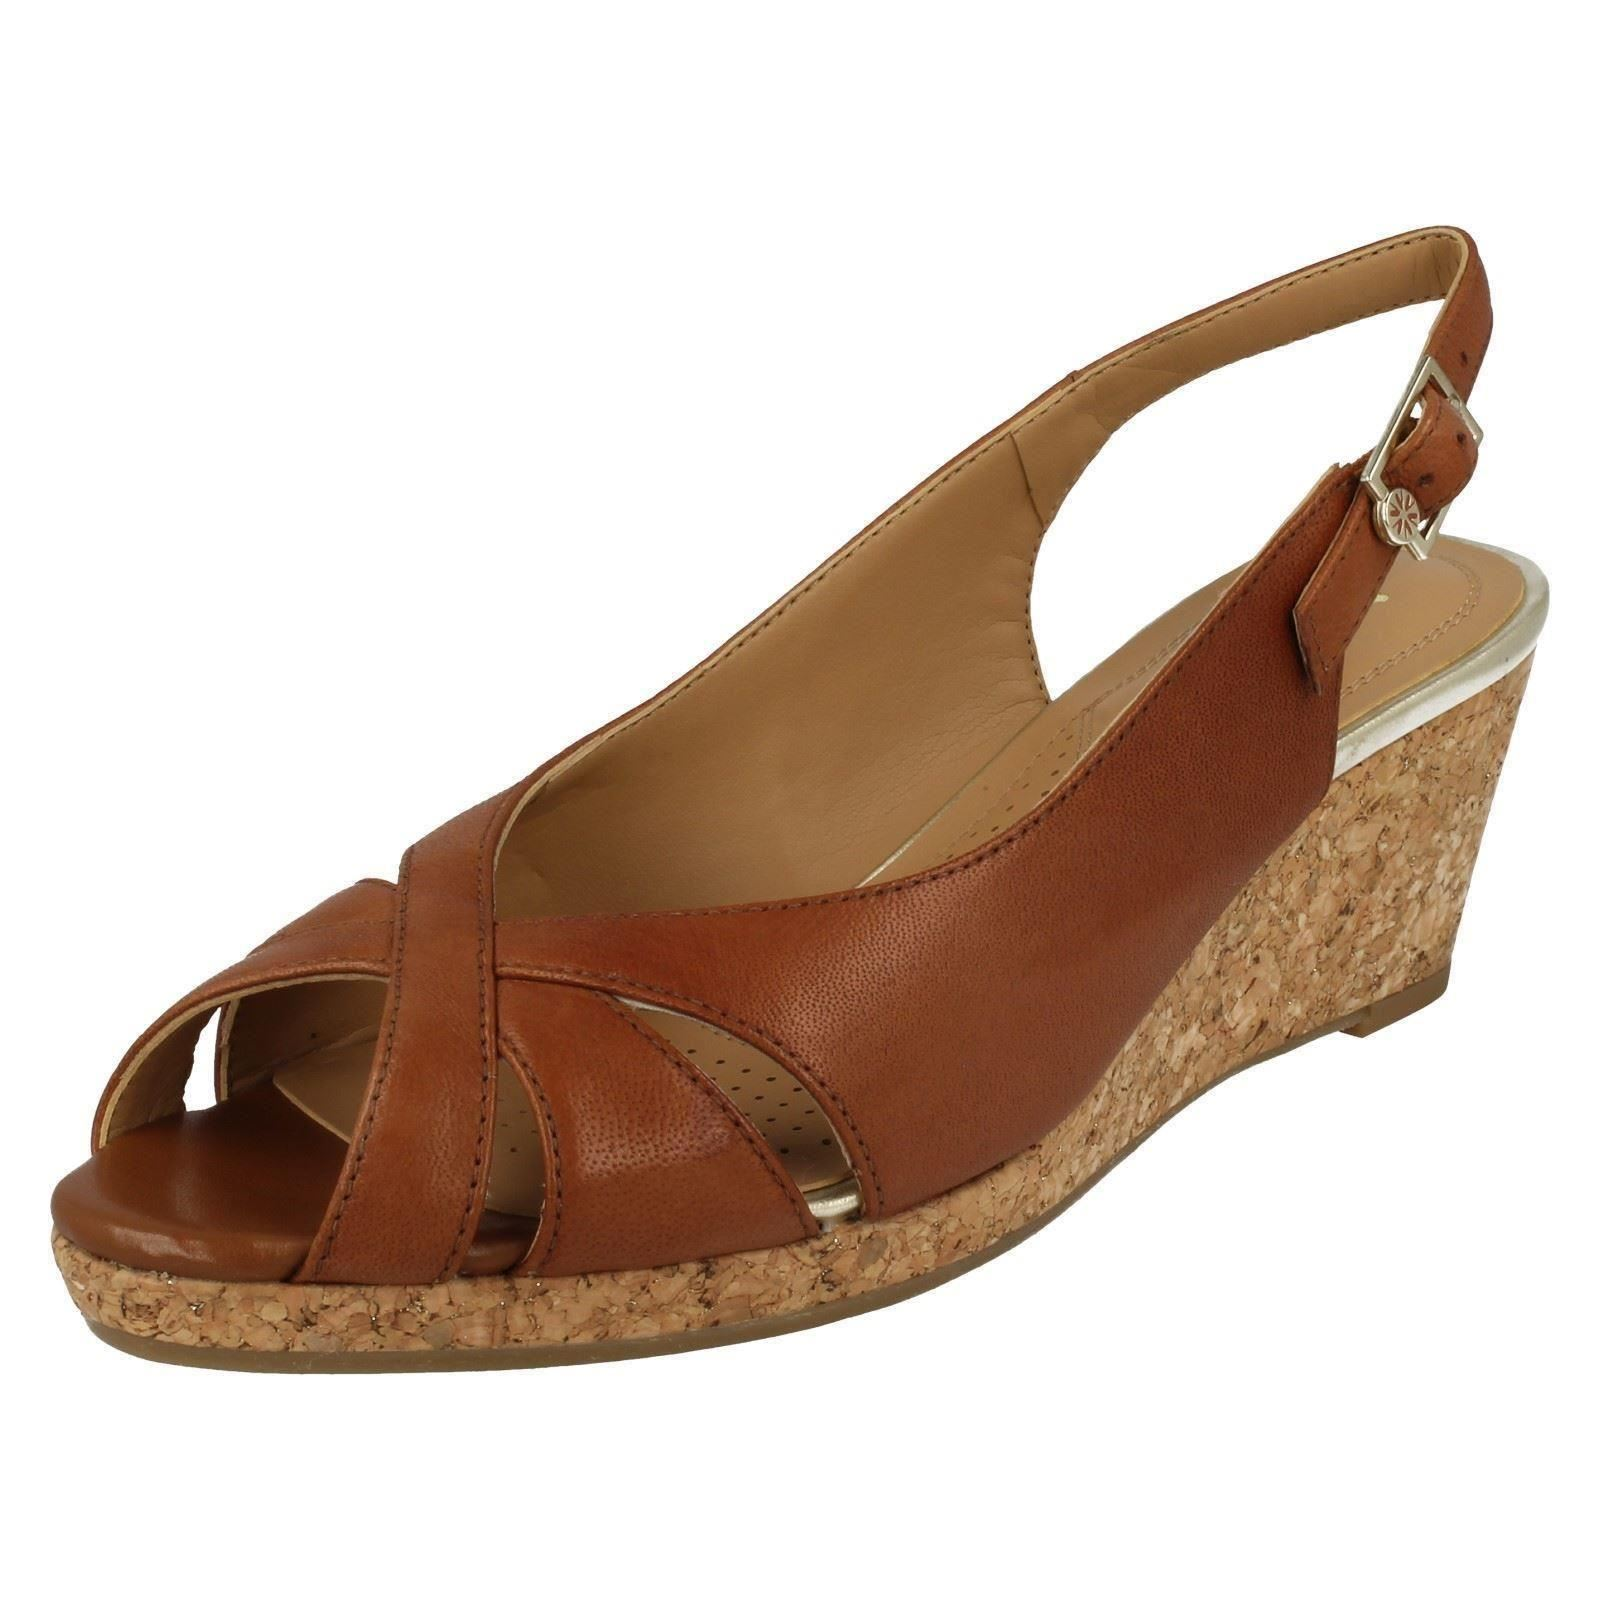 van dal wedge shoes